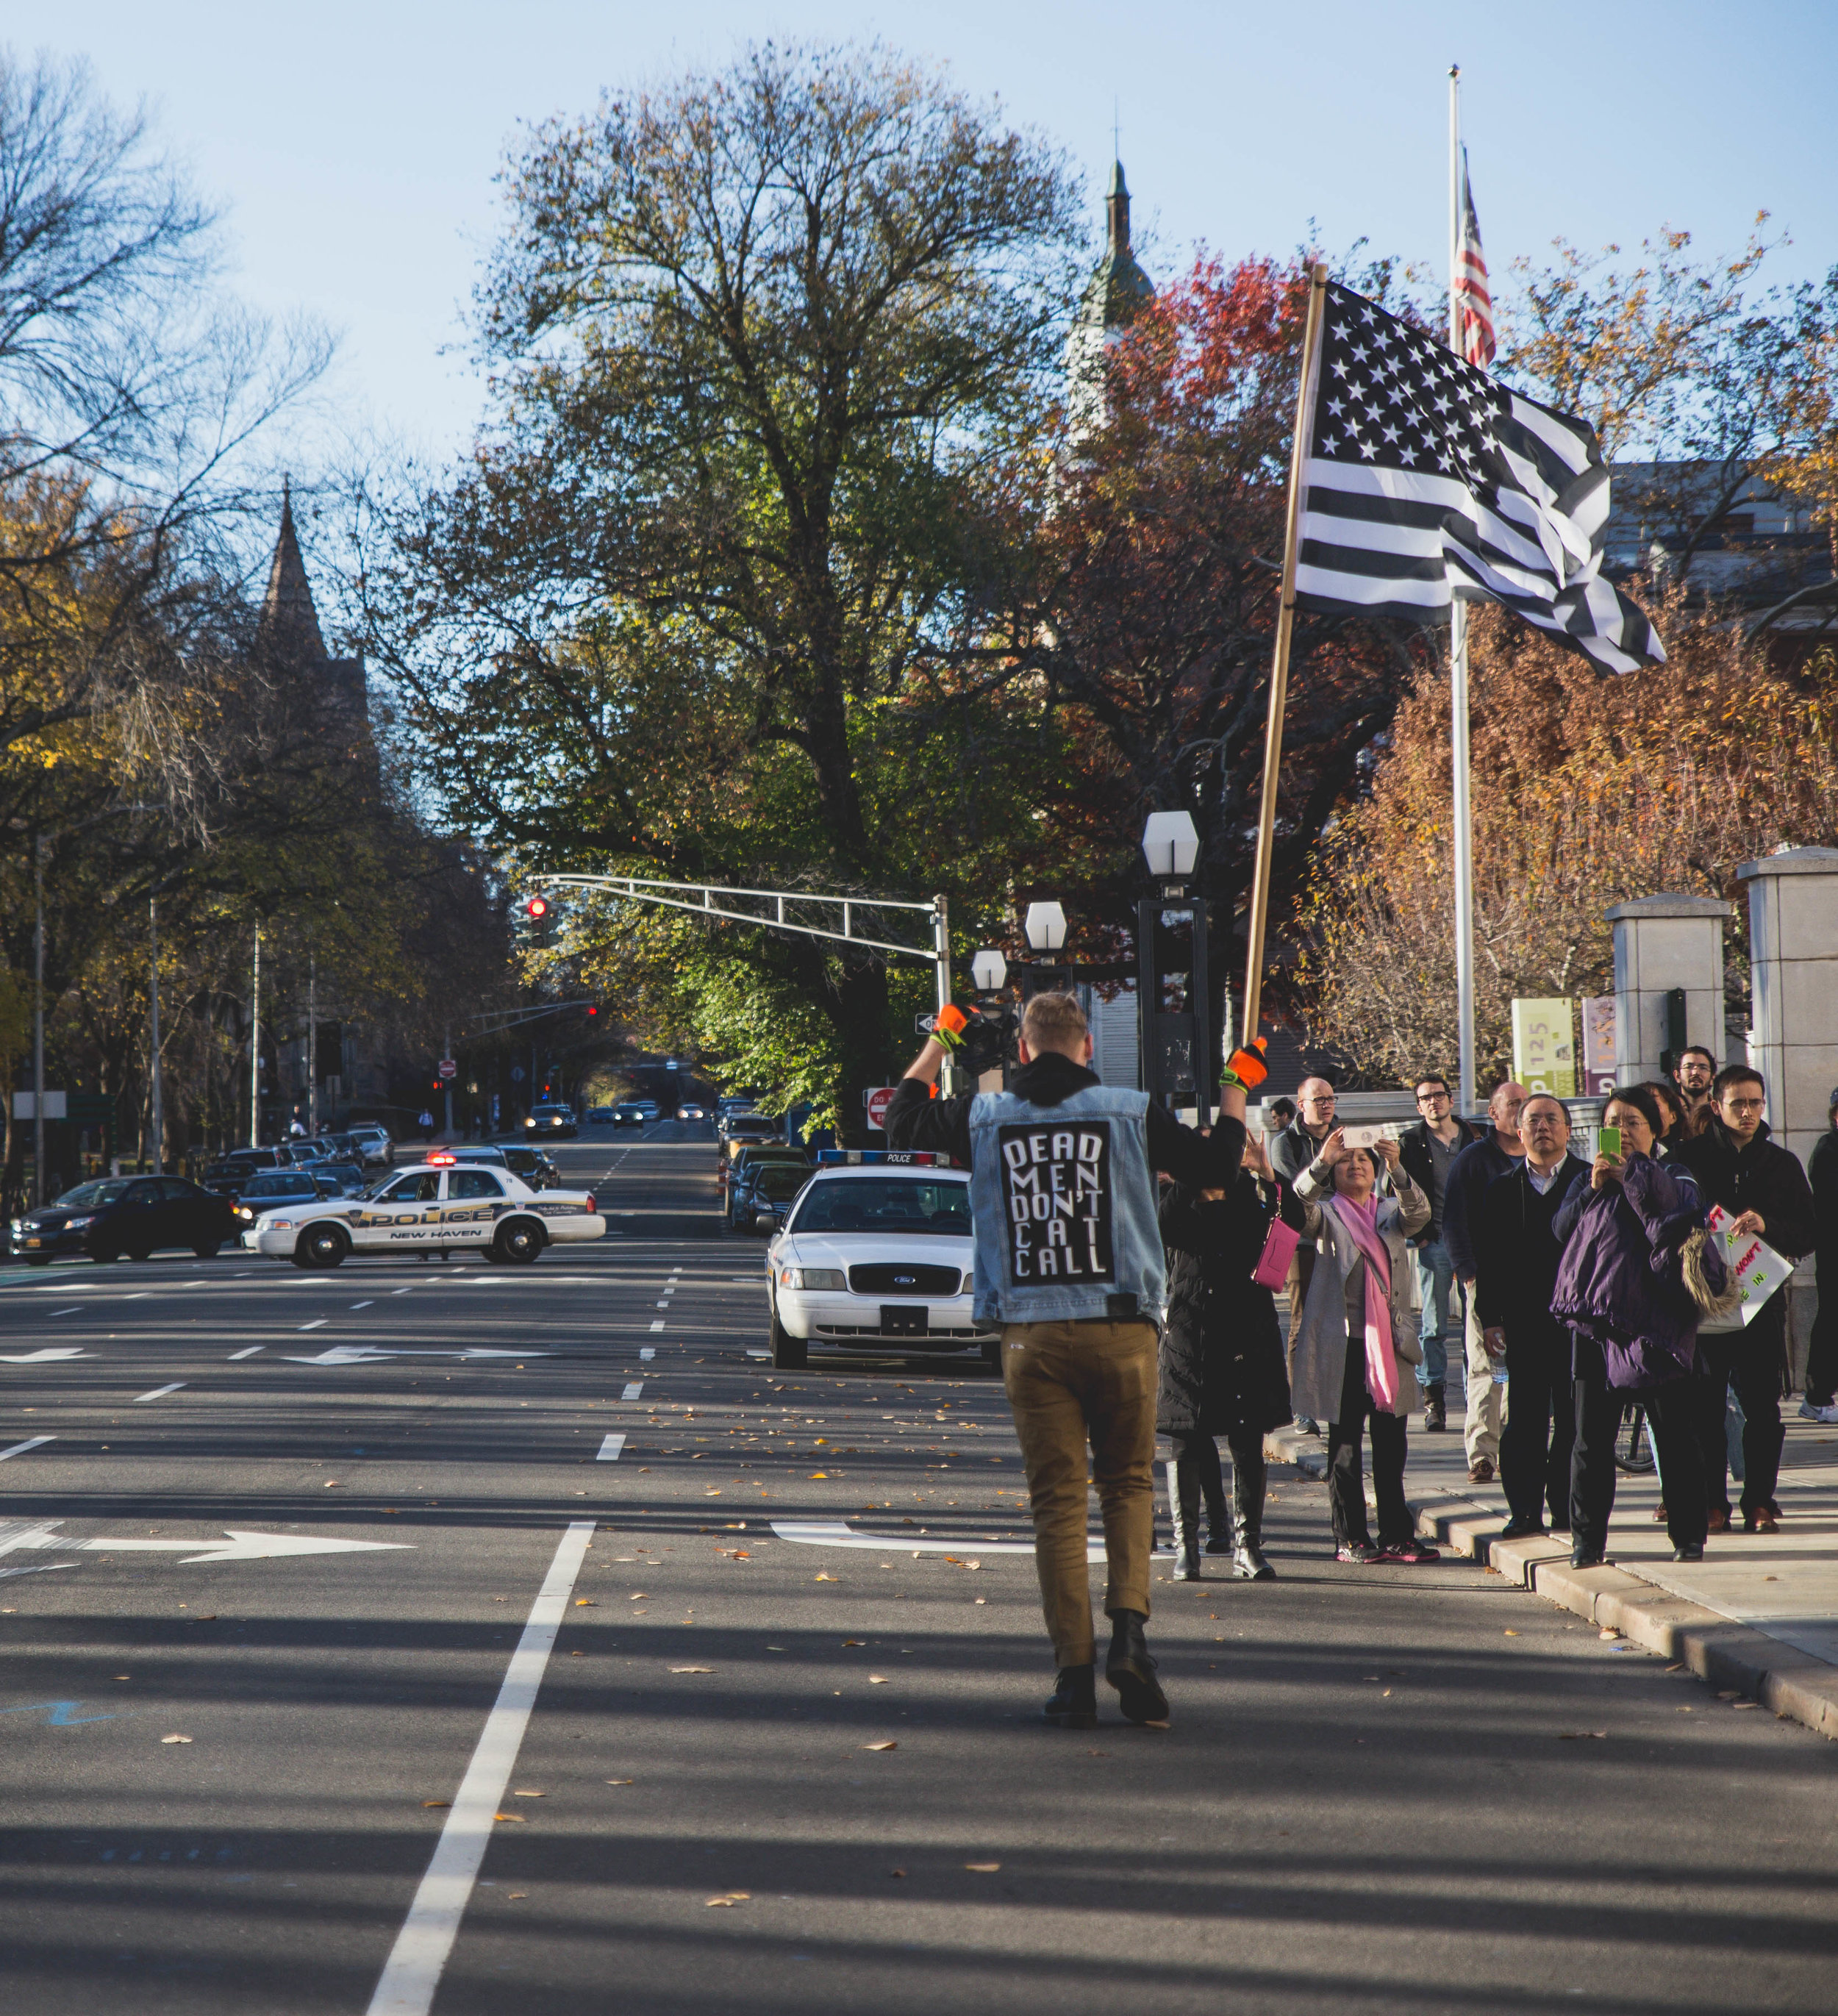 New Haven, Connecticut - November 13th, 2016: Police block off a street for the protesters who are in the street, most likely for safety reasons.